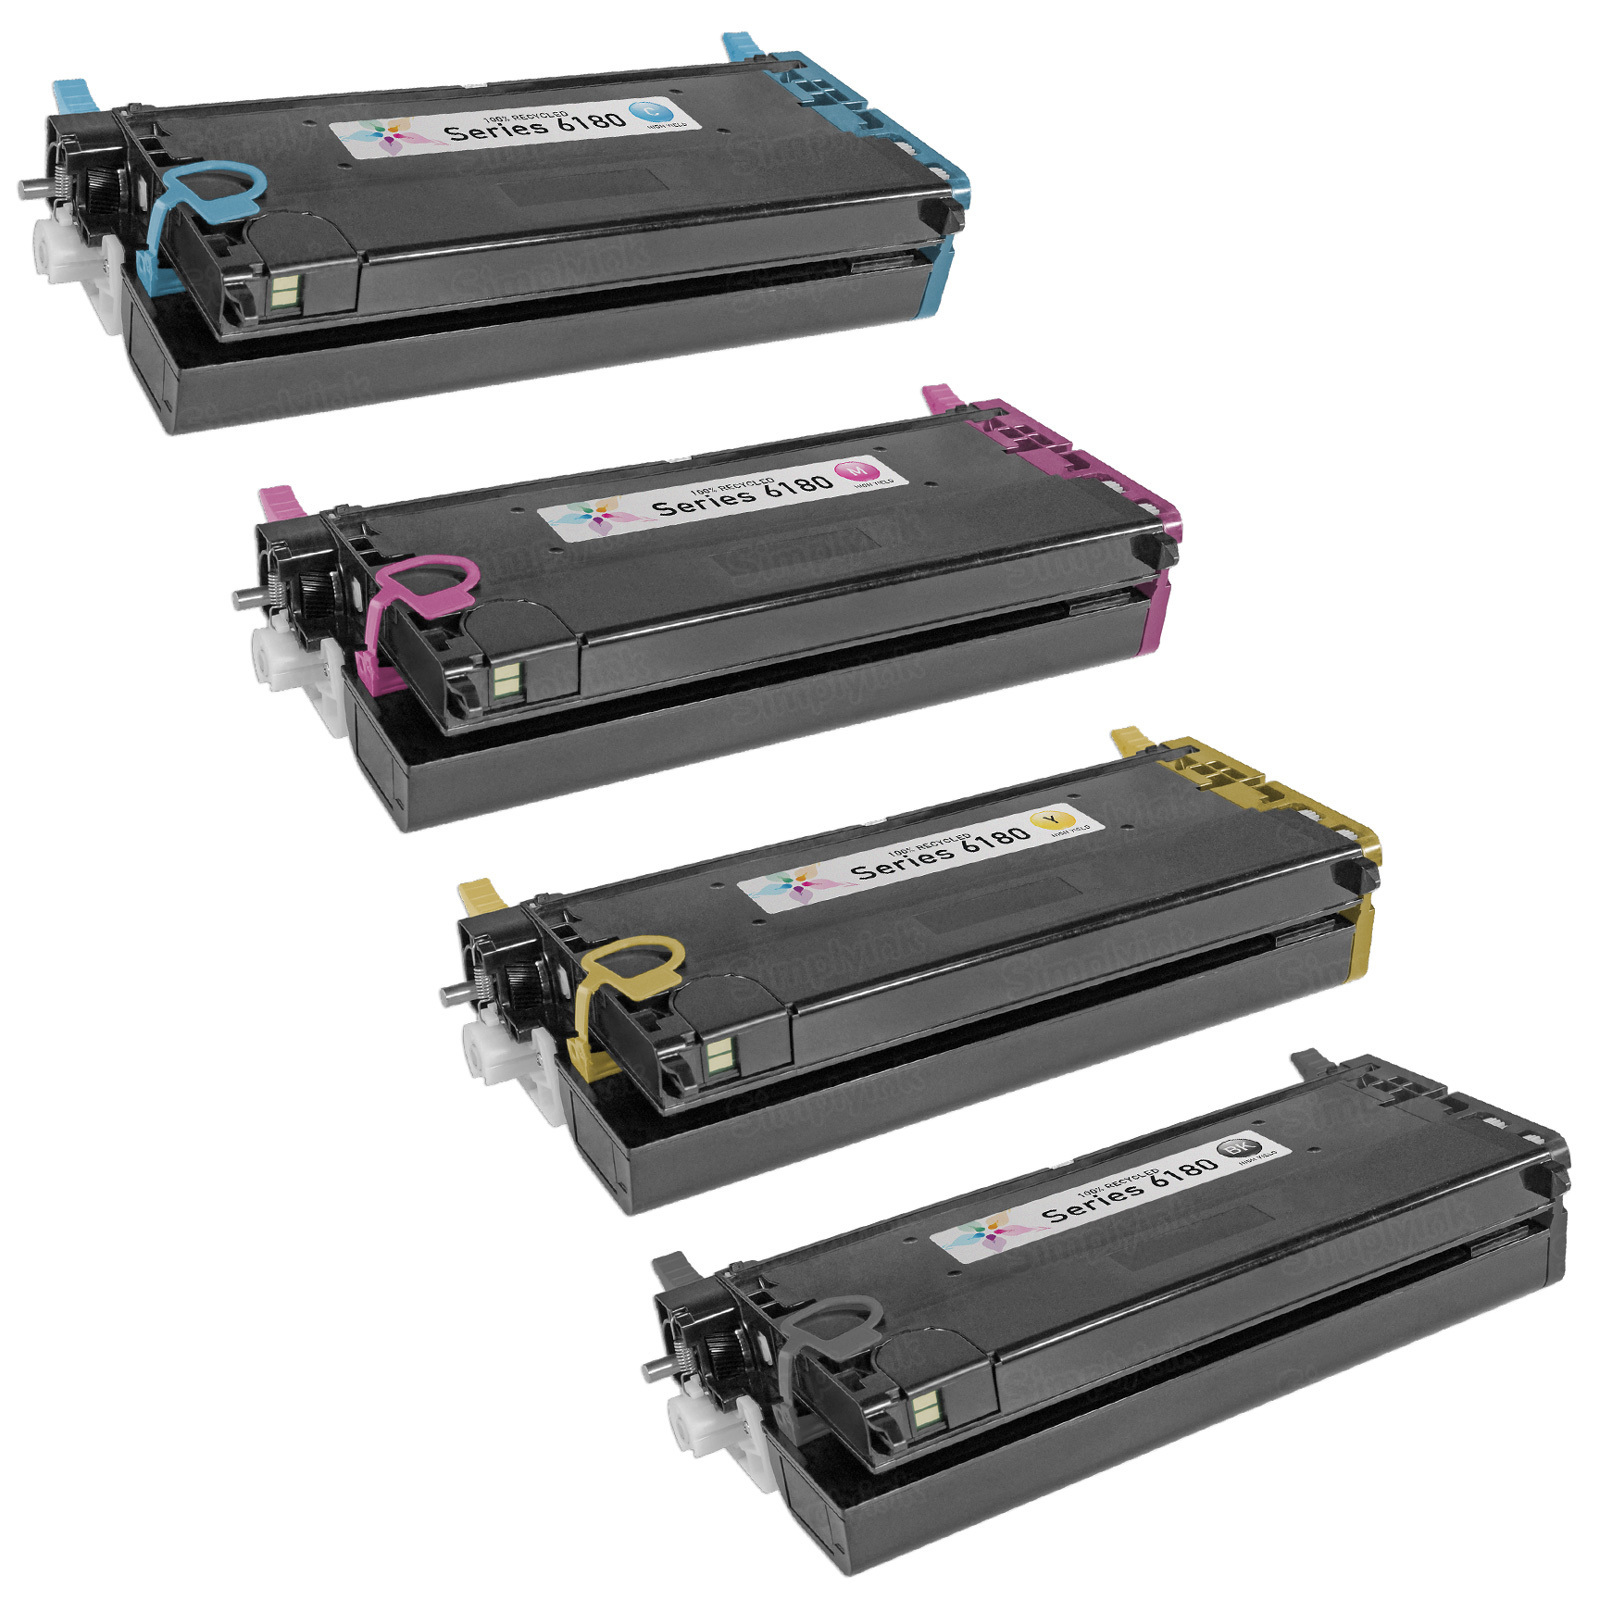 Remanufactured Phaser 6180 Xerox HC Set of 4 Toners: Bk, C, M, Y